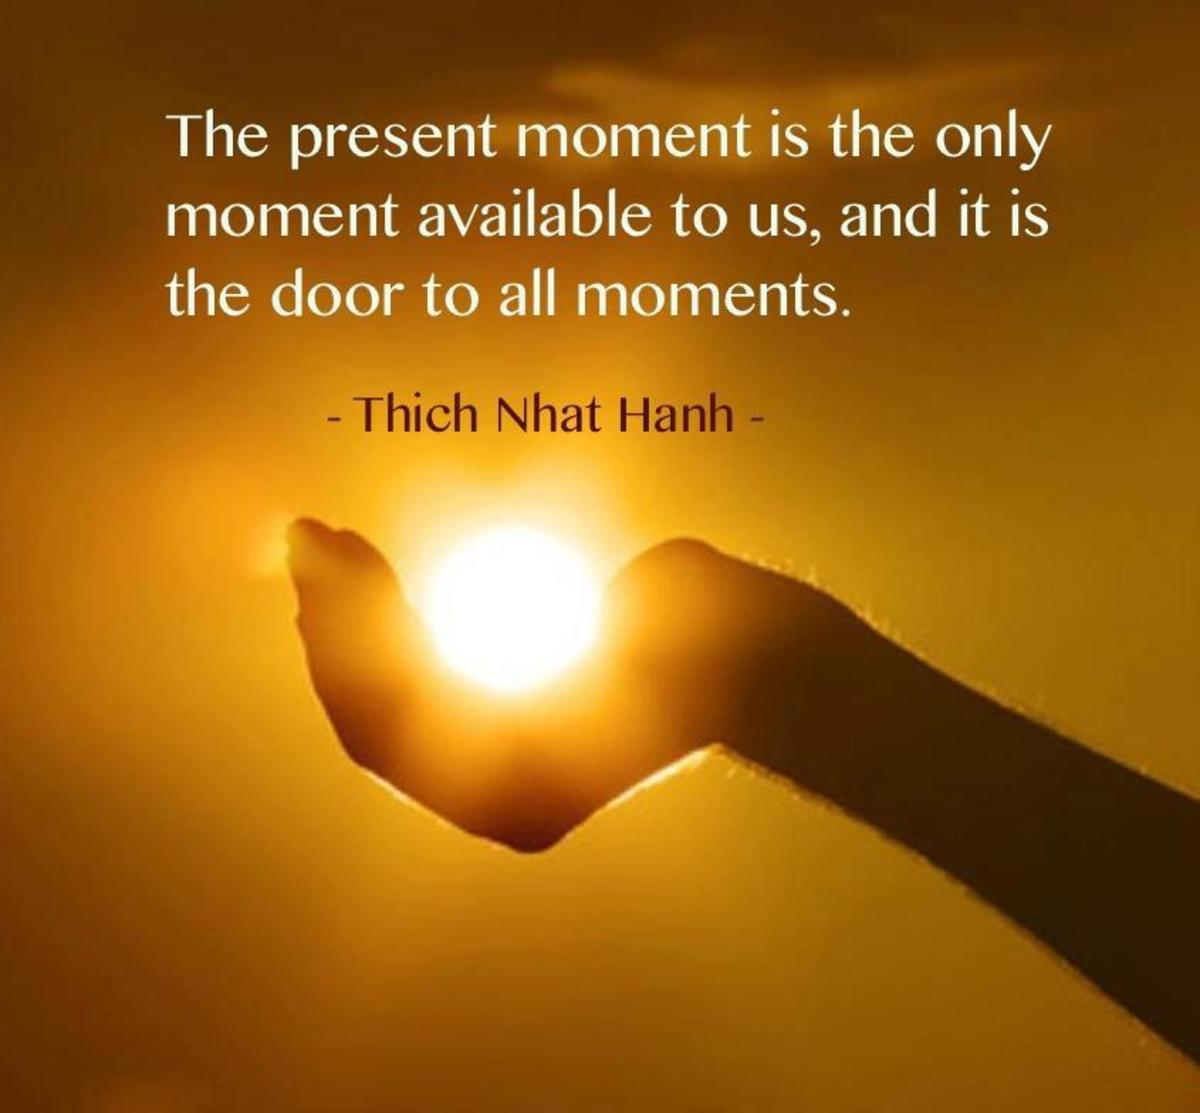 Be Fully In The Present Moment In 7 Days!